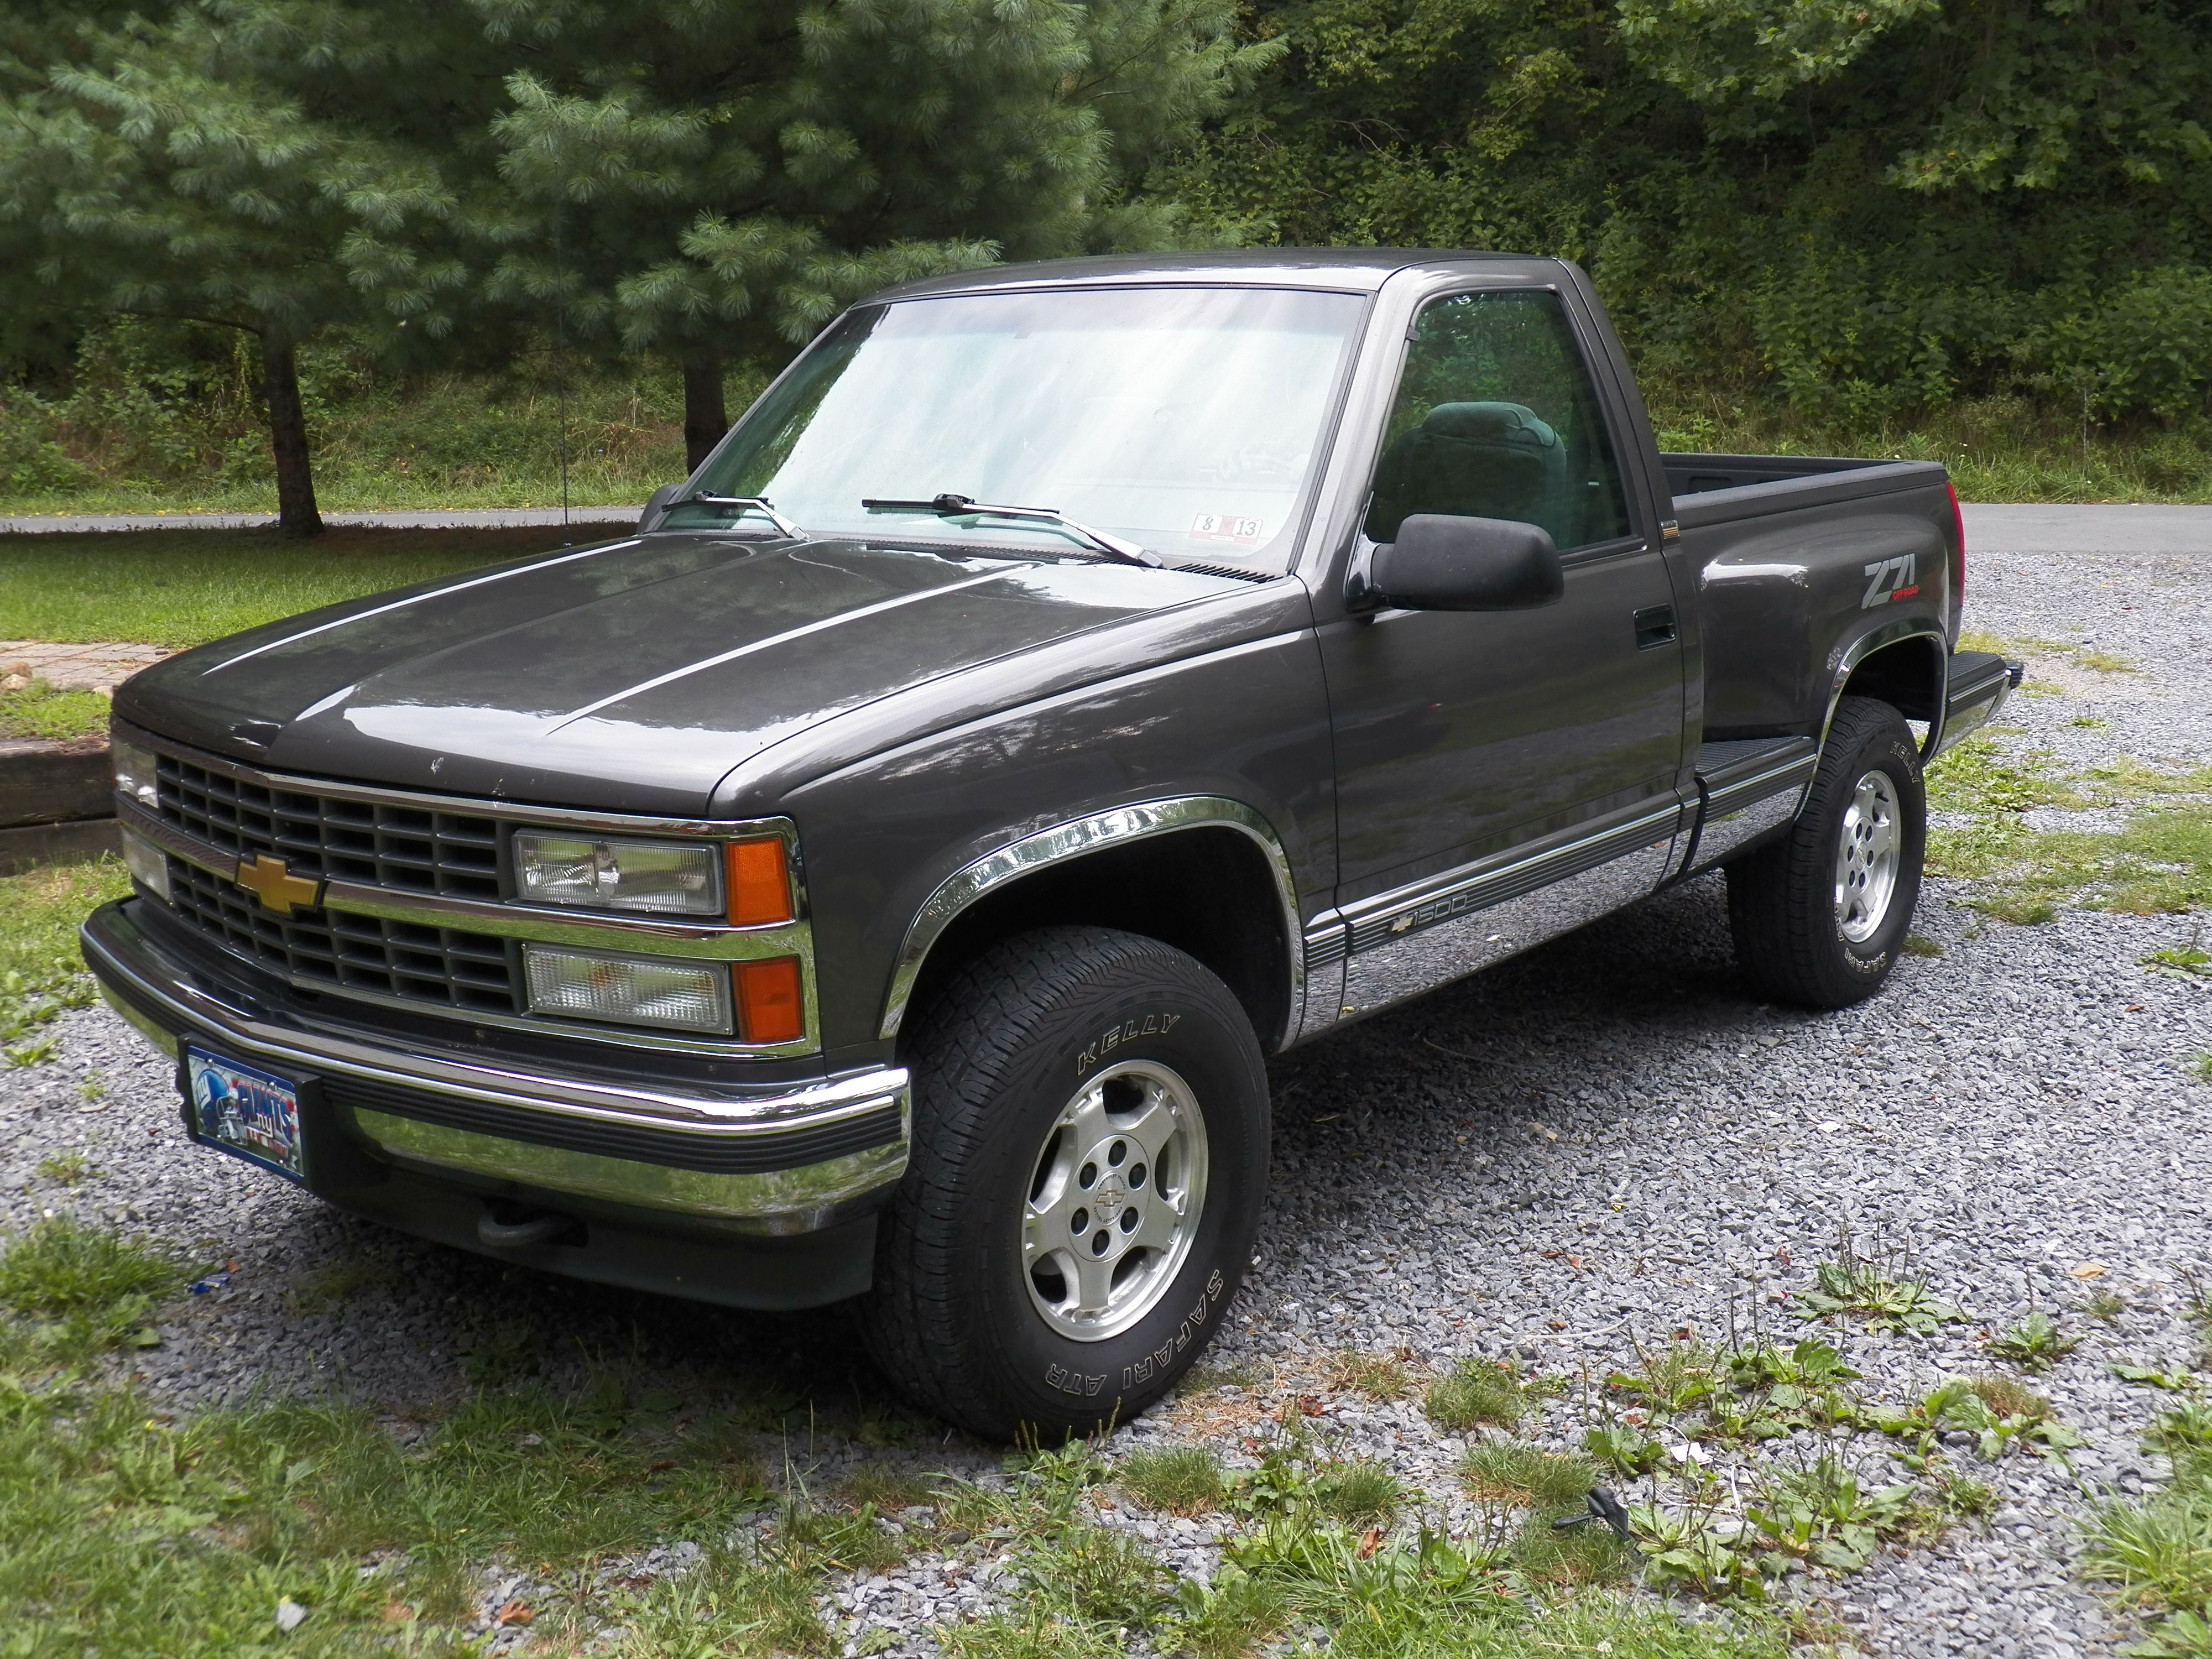 My Pretty Baby 1994 Chevy Stepside Truck 350 Z71 Gunmetal Grey I Ve Wanted One Of These Since Was A Bought This About 3 Weeks Ago